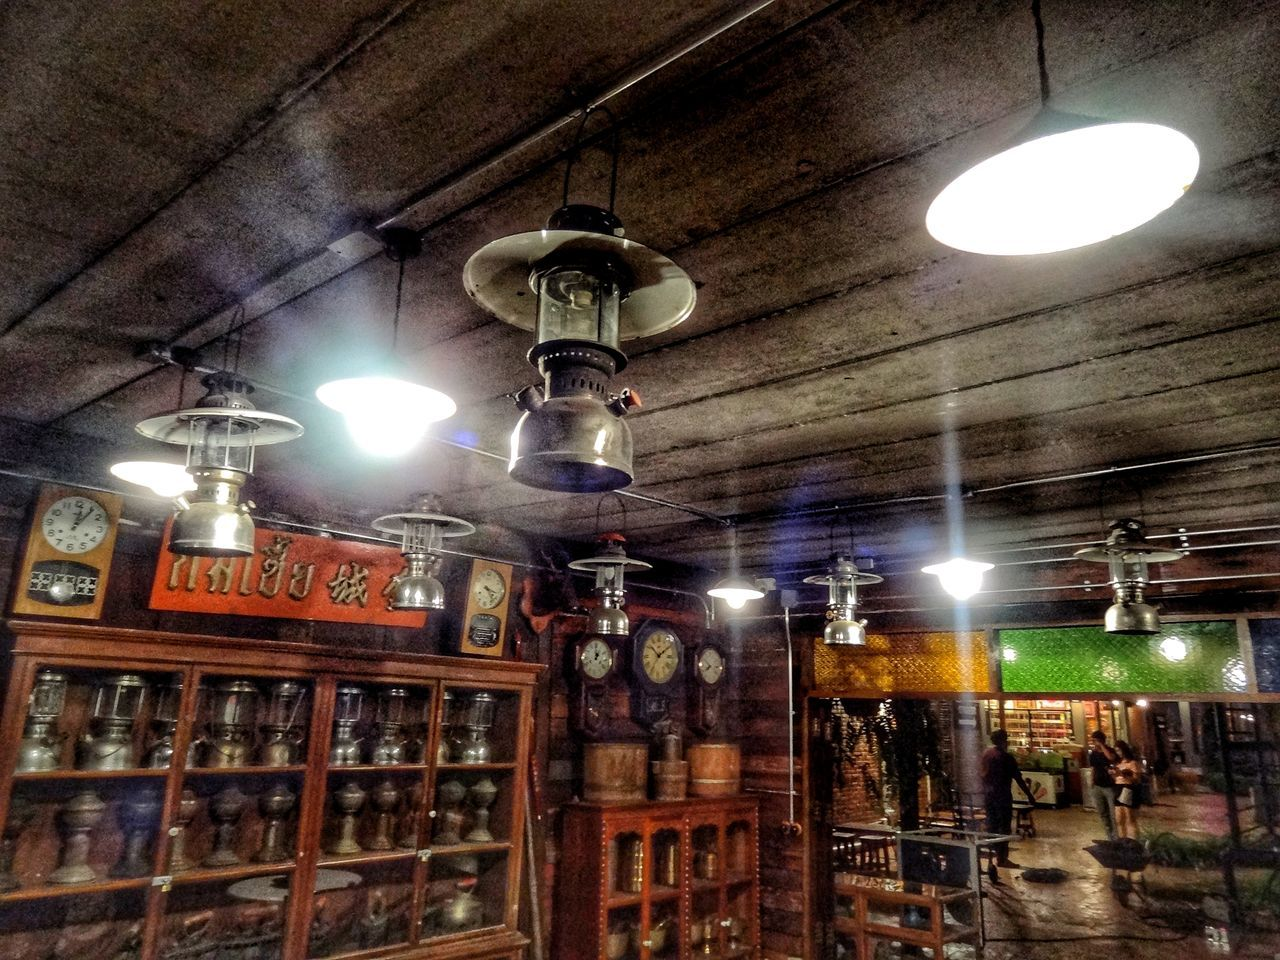 Old Shop Store Indoors  Light And Shadow Light Bulbs Traditional Medicine Shop Shadow Hanging No People Night Lighting Equipment Low Angle View Indoor Vintage Photography